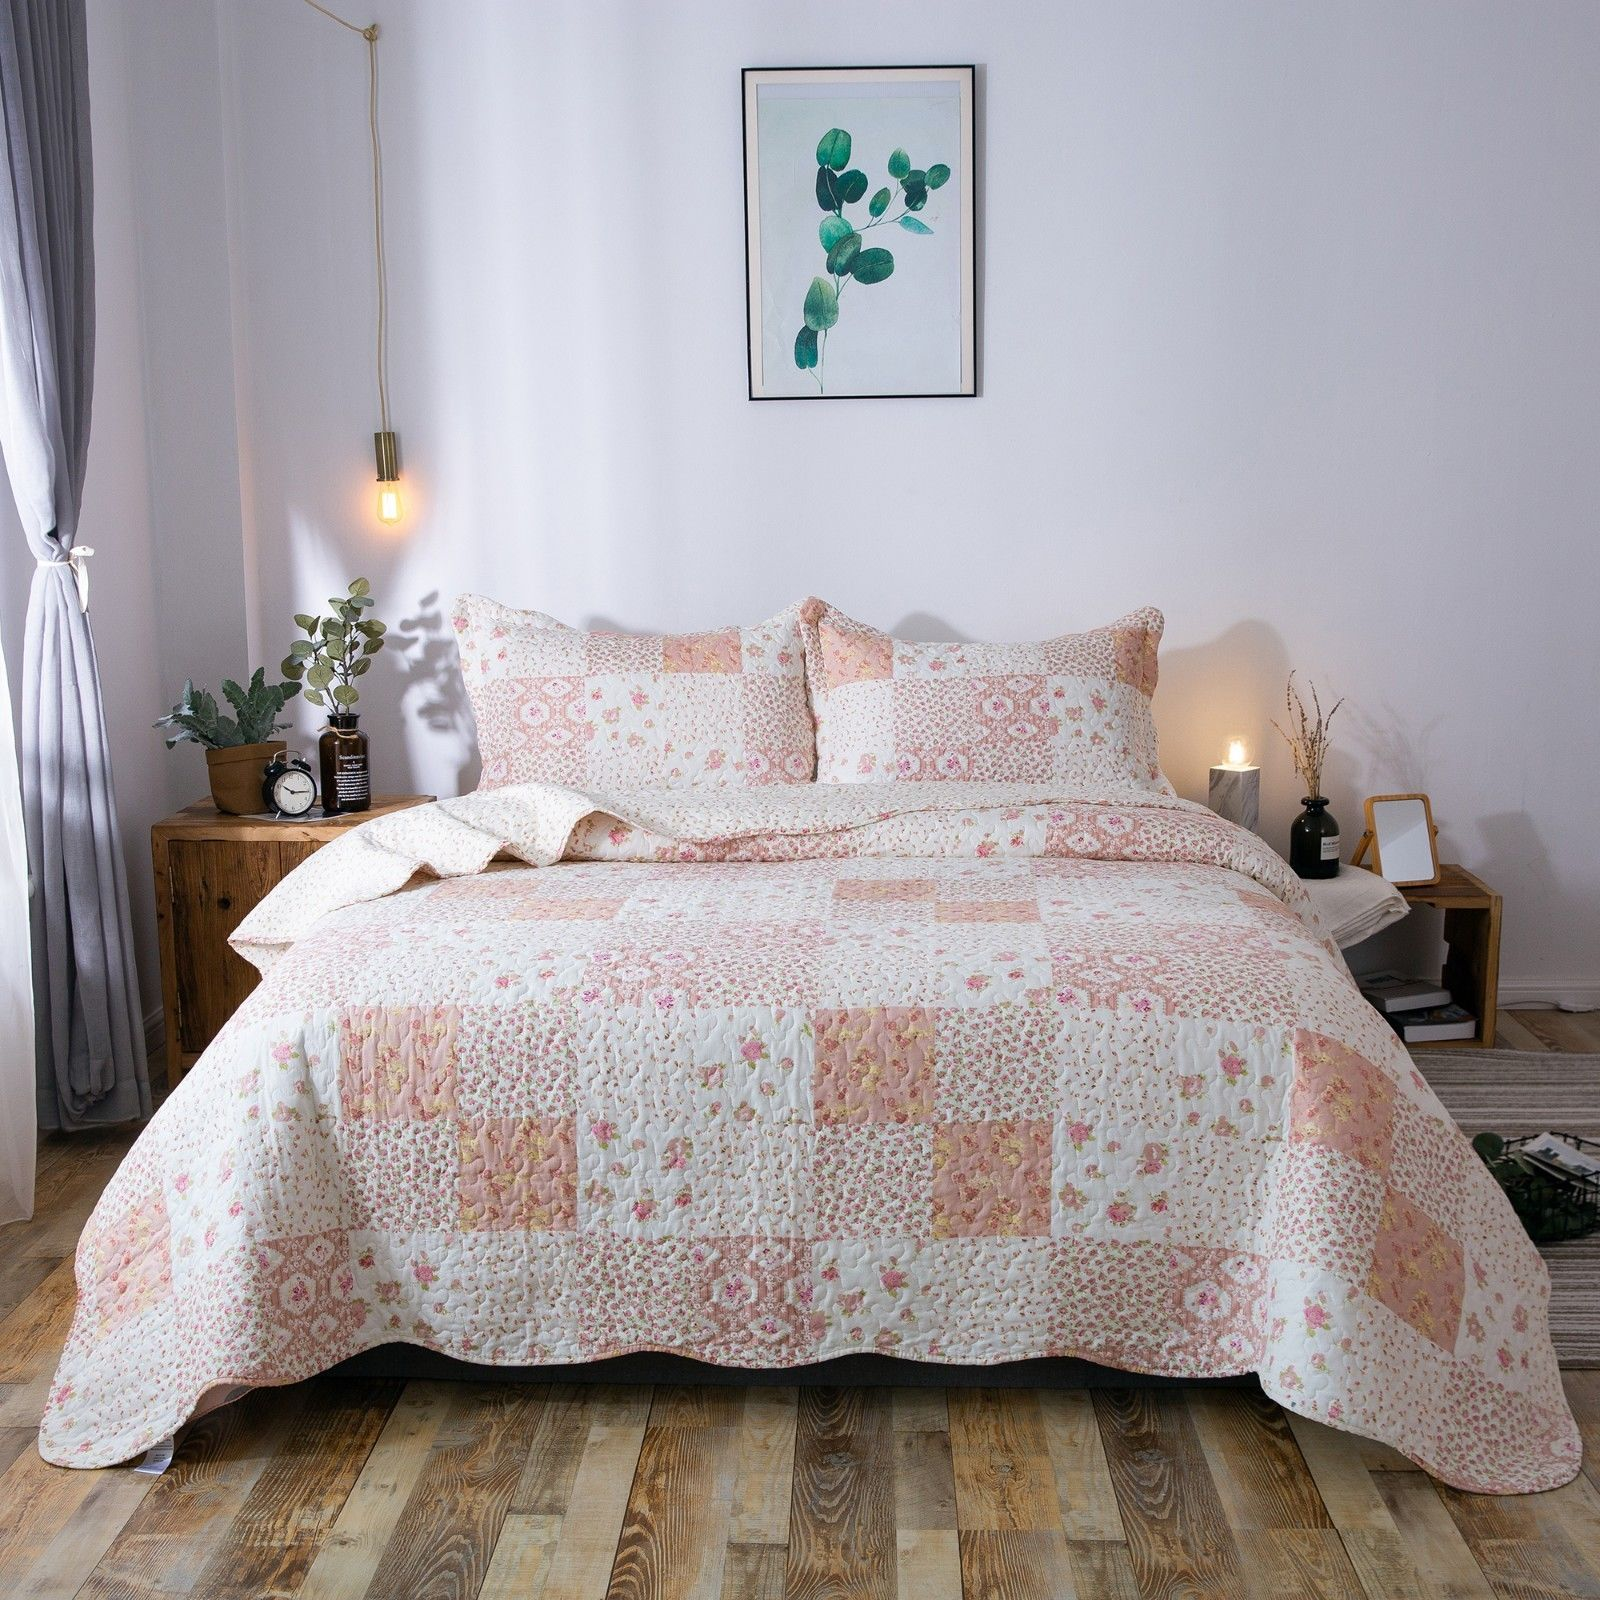 Kasentex Country-Chic Printed Pre-Washed Quilt Set. Microfiber Fabric Multi-Pink - Kasentex